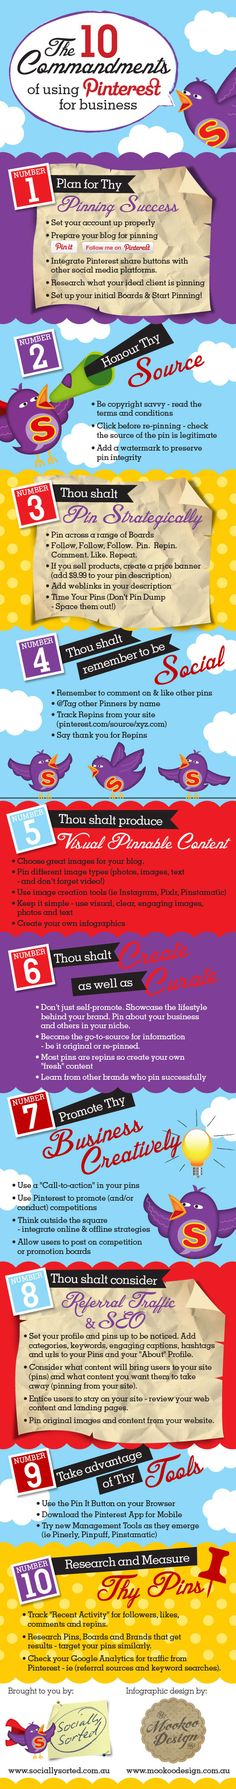 #Infographic - The 10 Commandments of Using Pinterest for Business  http://sociallysorted.com.au/pinterest-infographic/